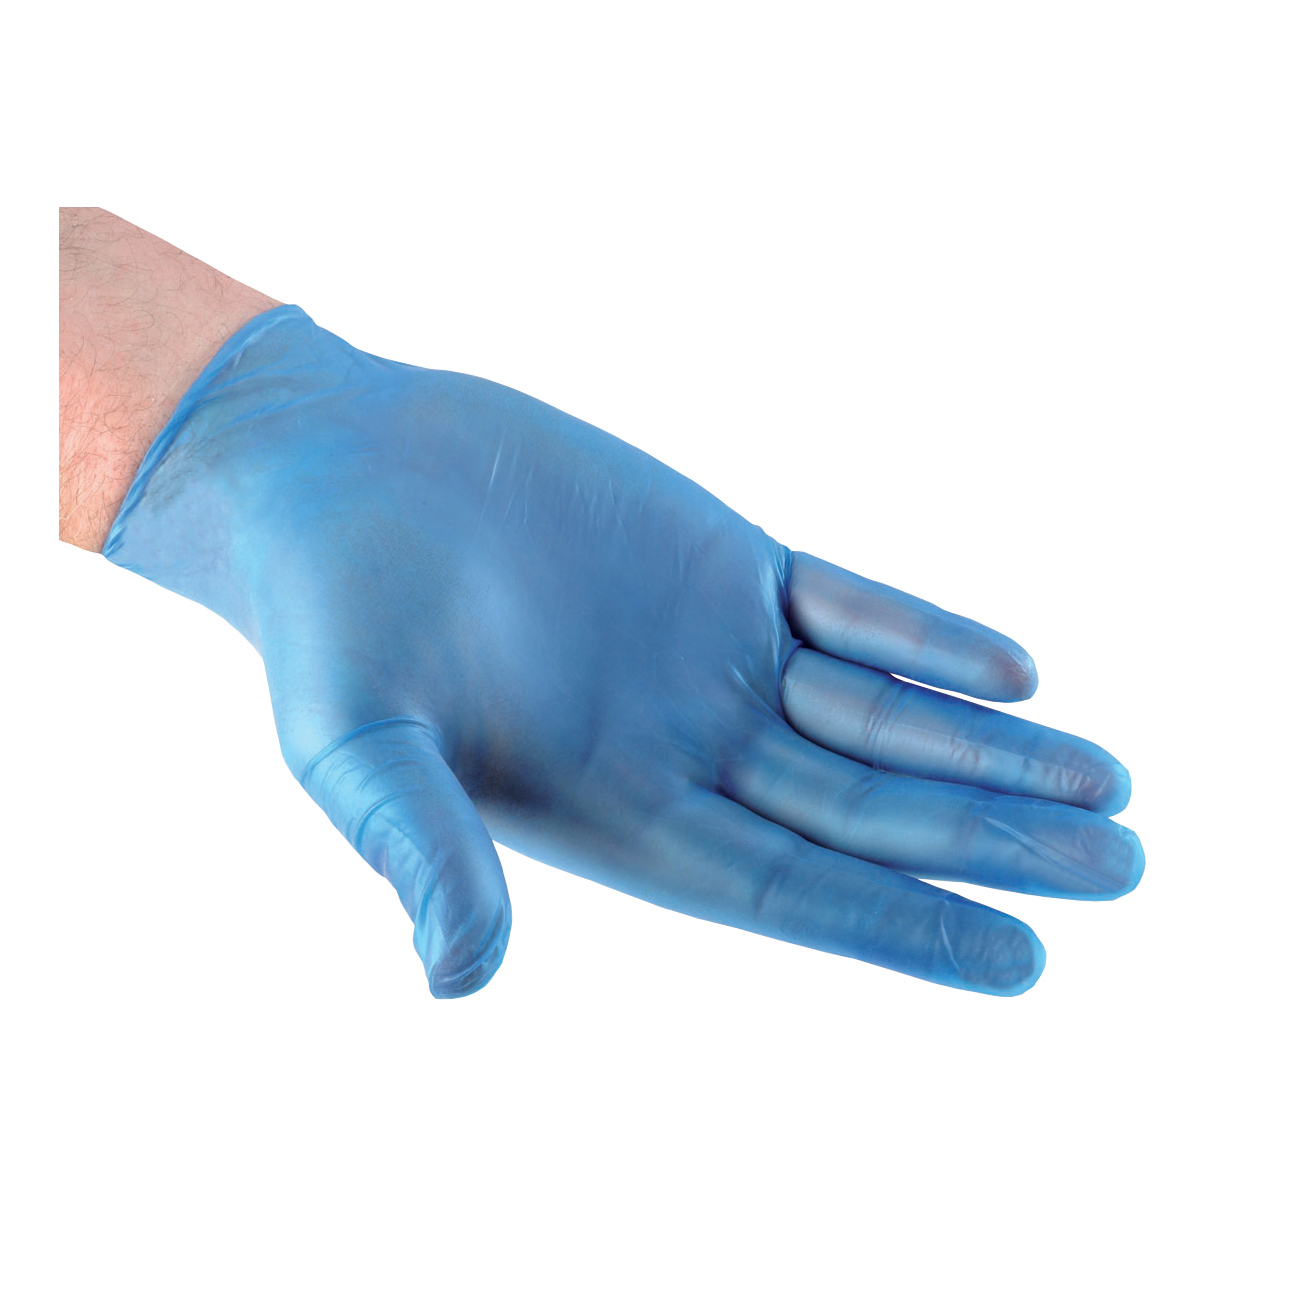 Vinyl Gloves Powder Free Extra Large Blue [Pack 100]